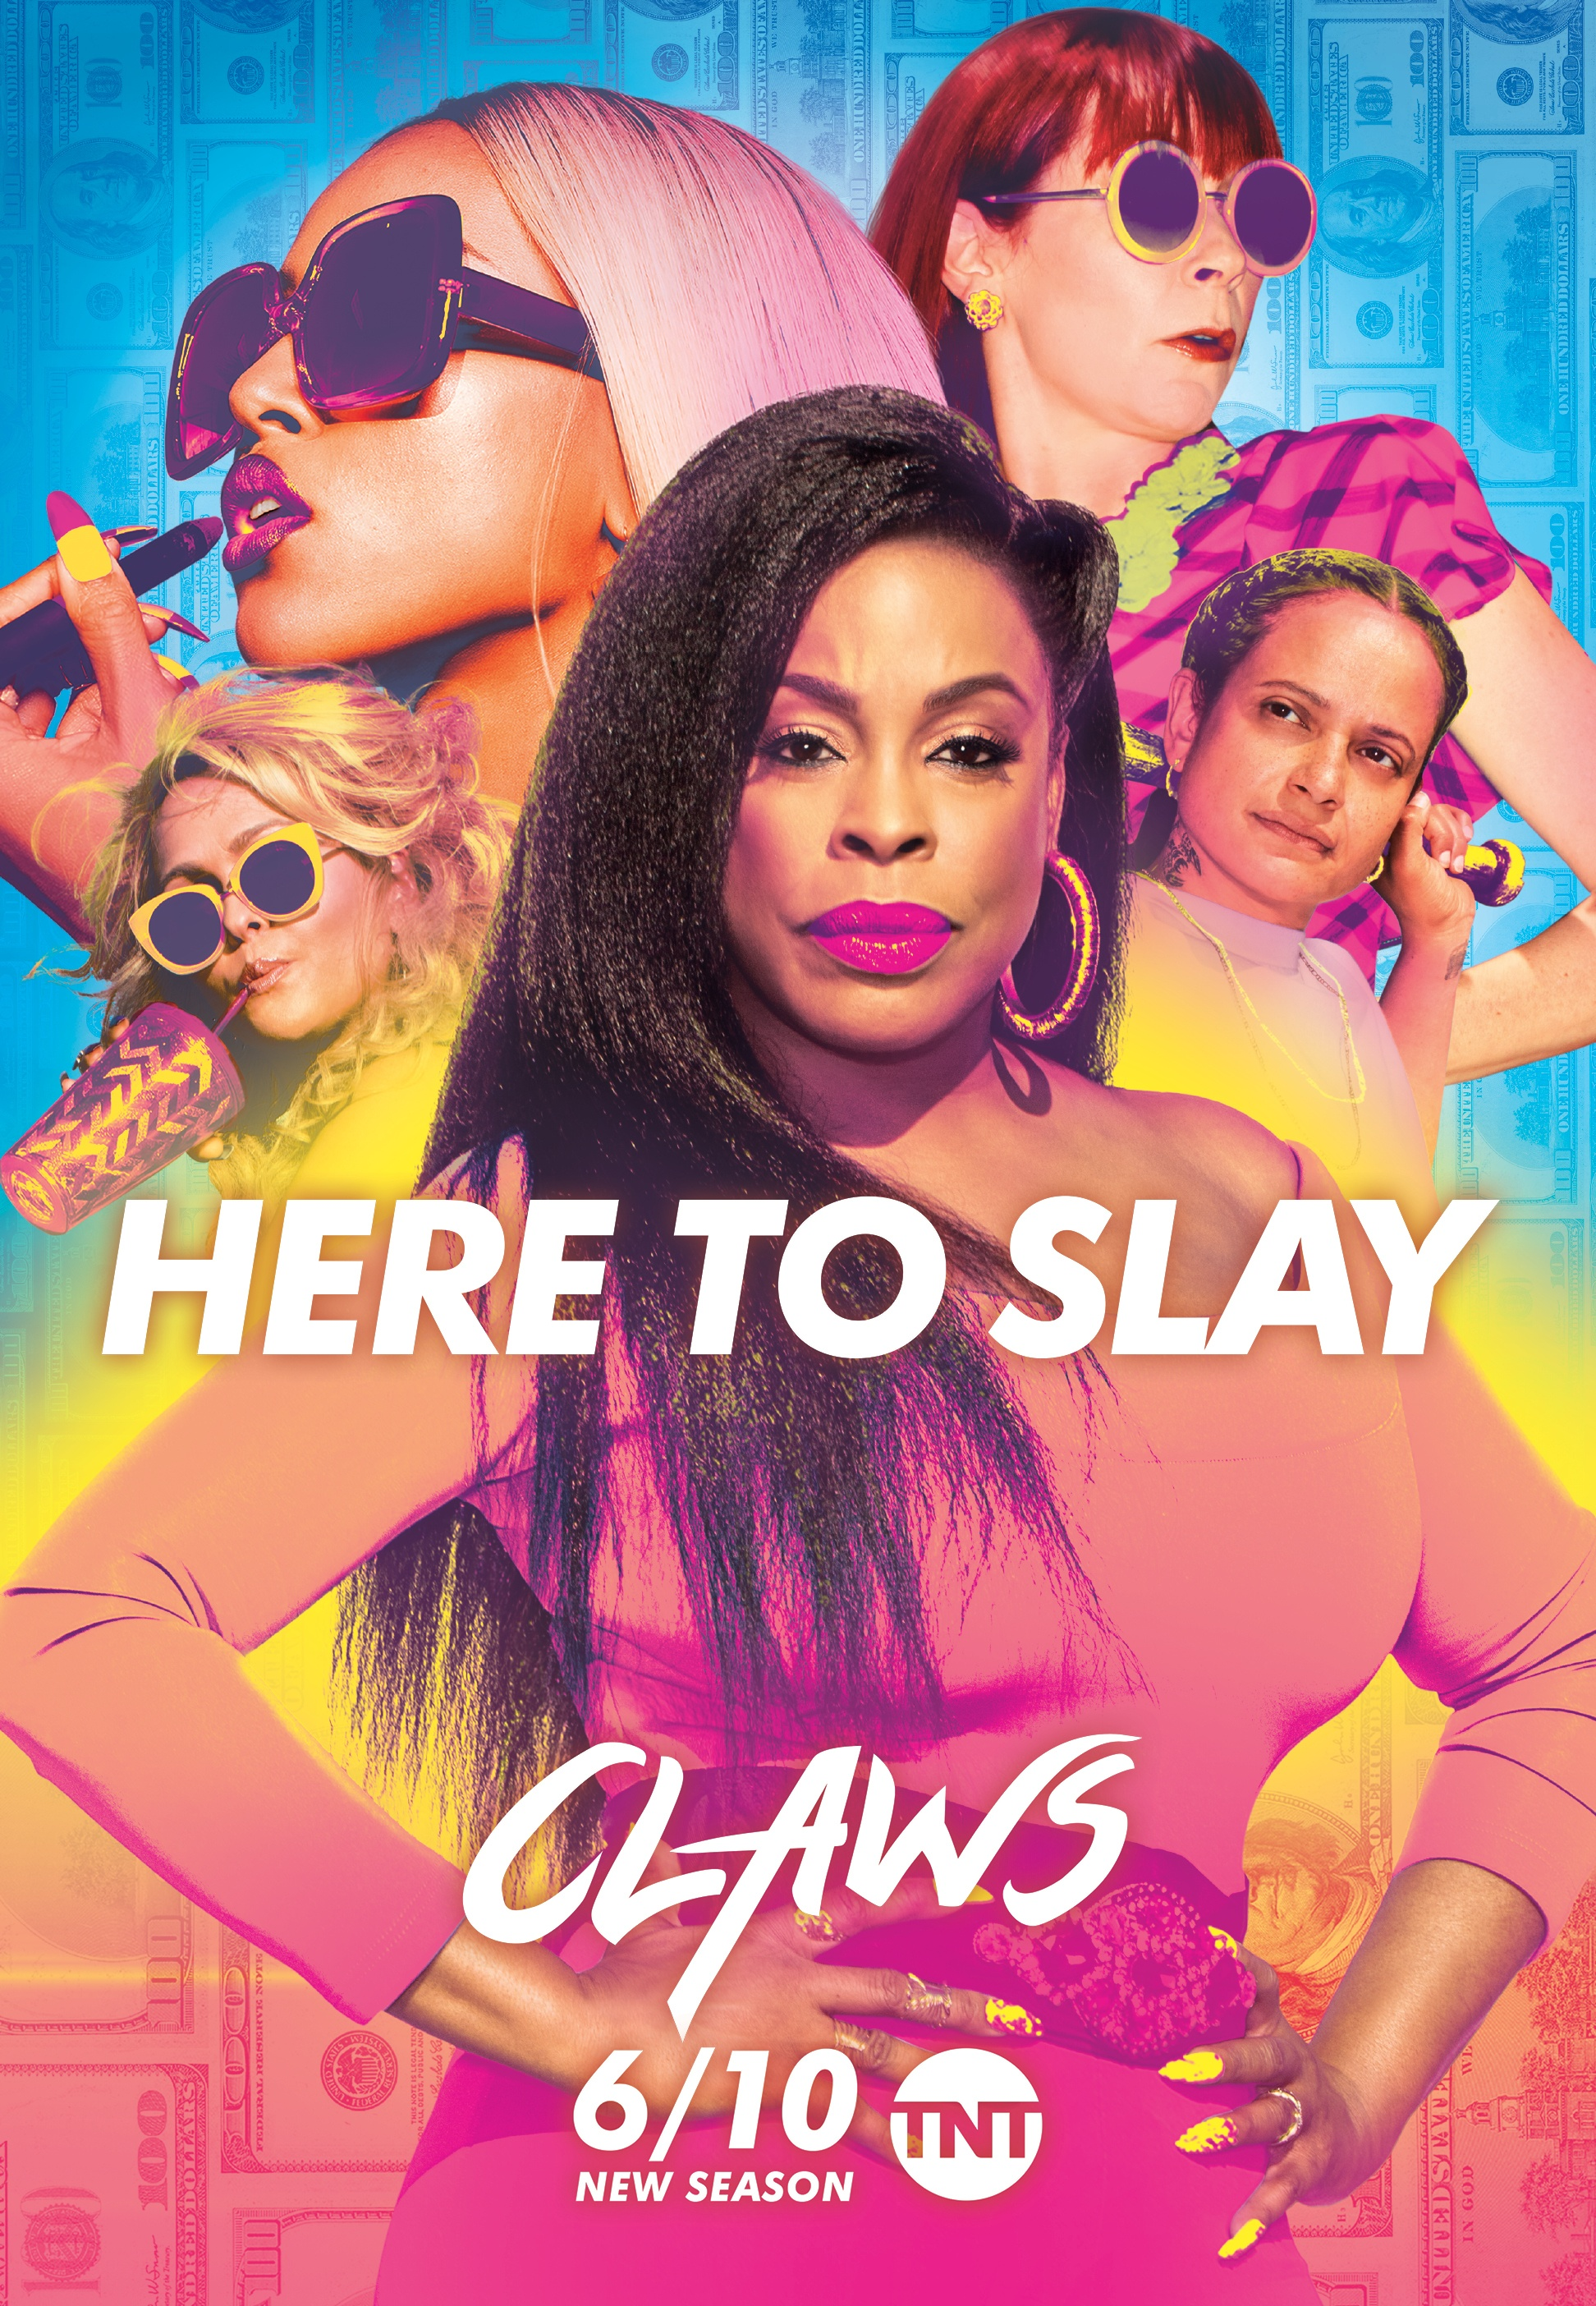 Thumbnail for Claws S2: Queens on Claws Drag Mother Tongue